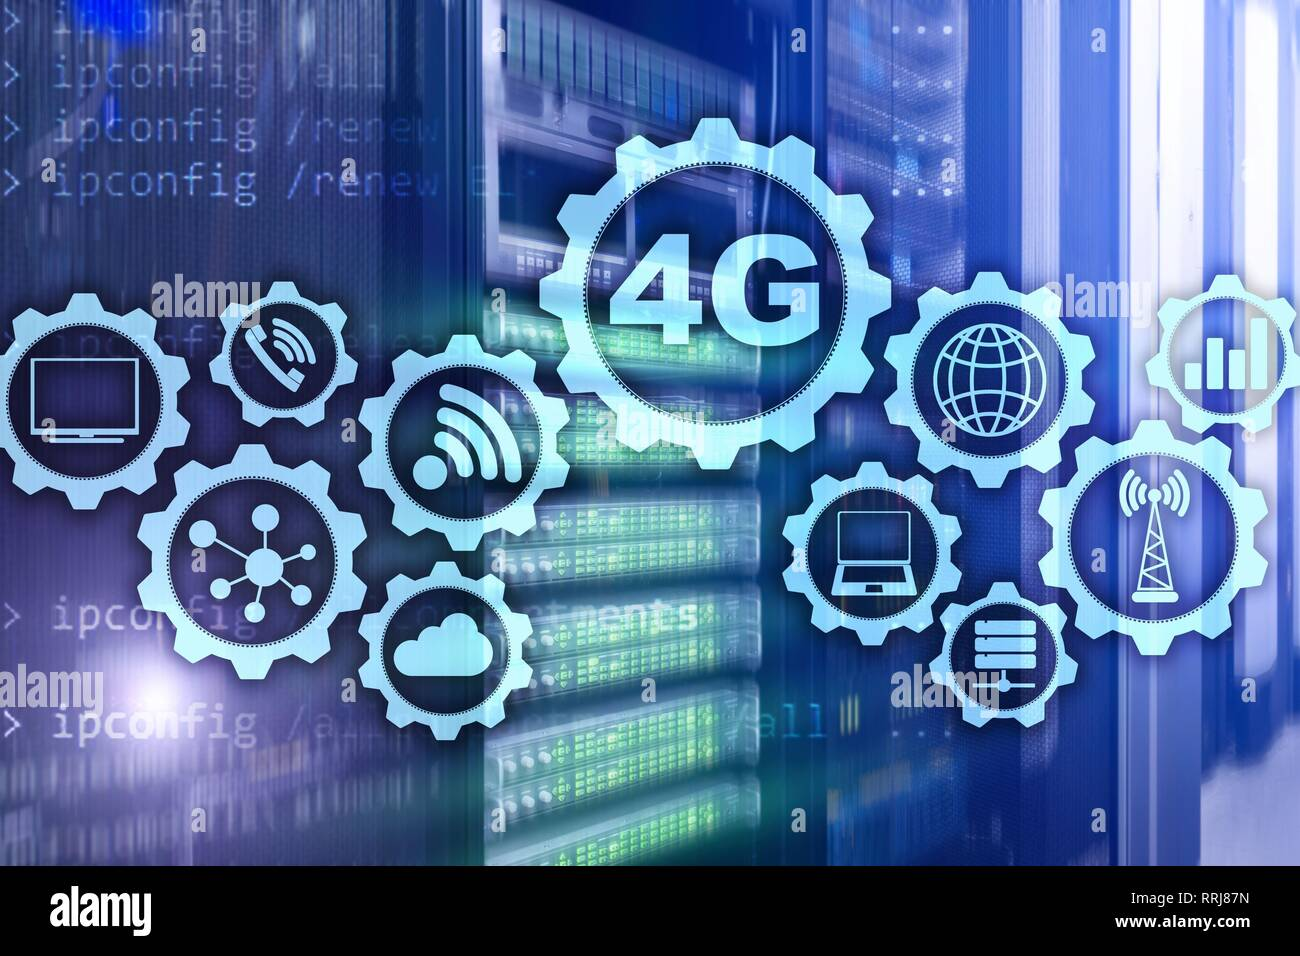 Mobile telecommunication cellular high speed data connection concept: 4G LTE. On server room background. - Stock Image